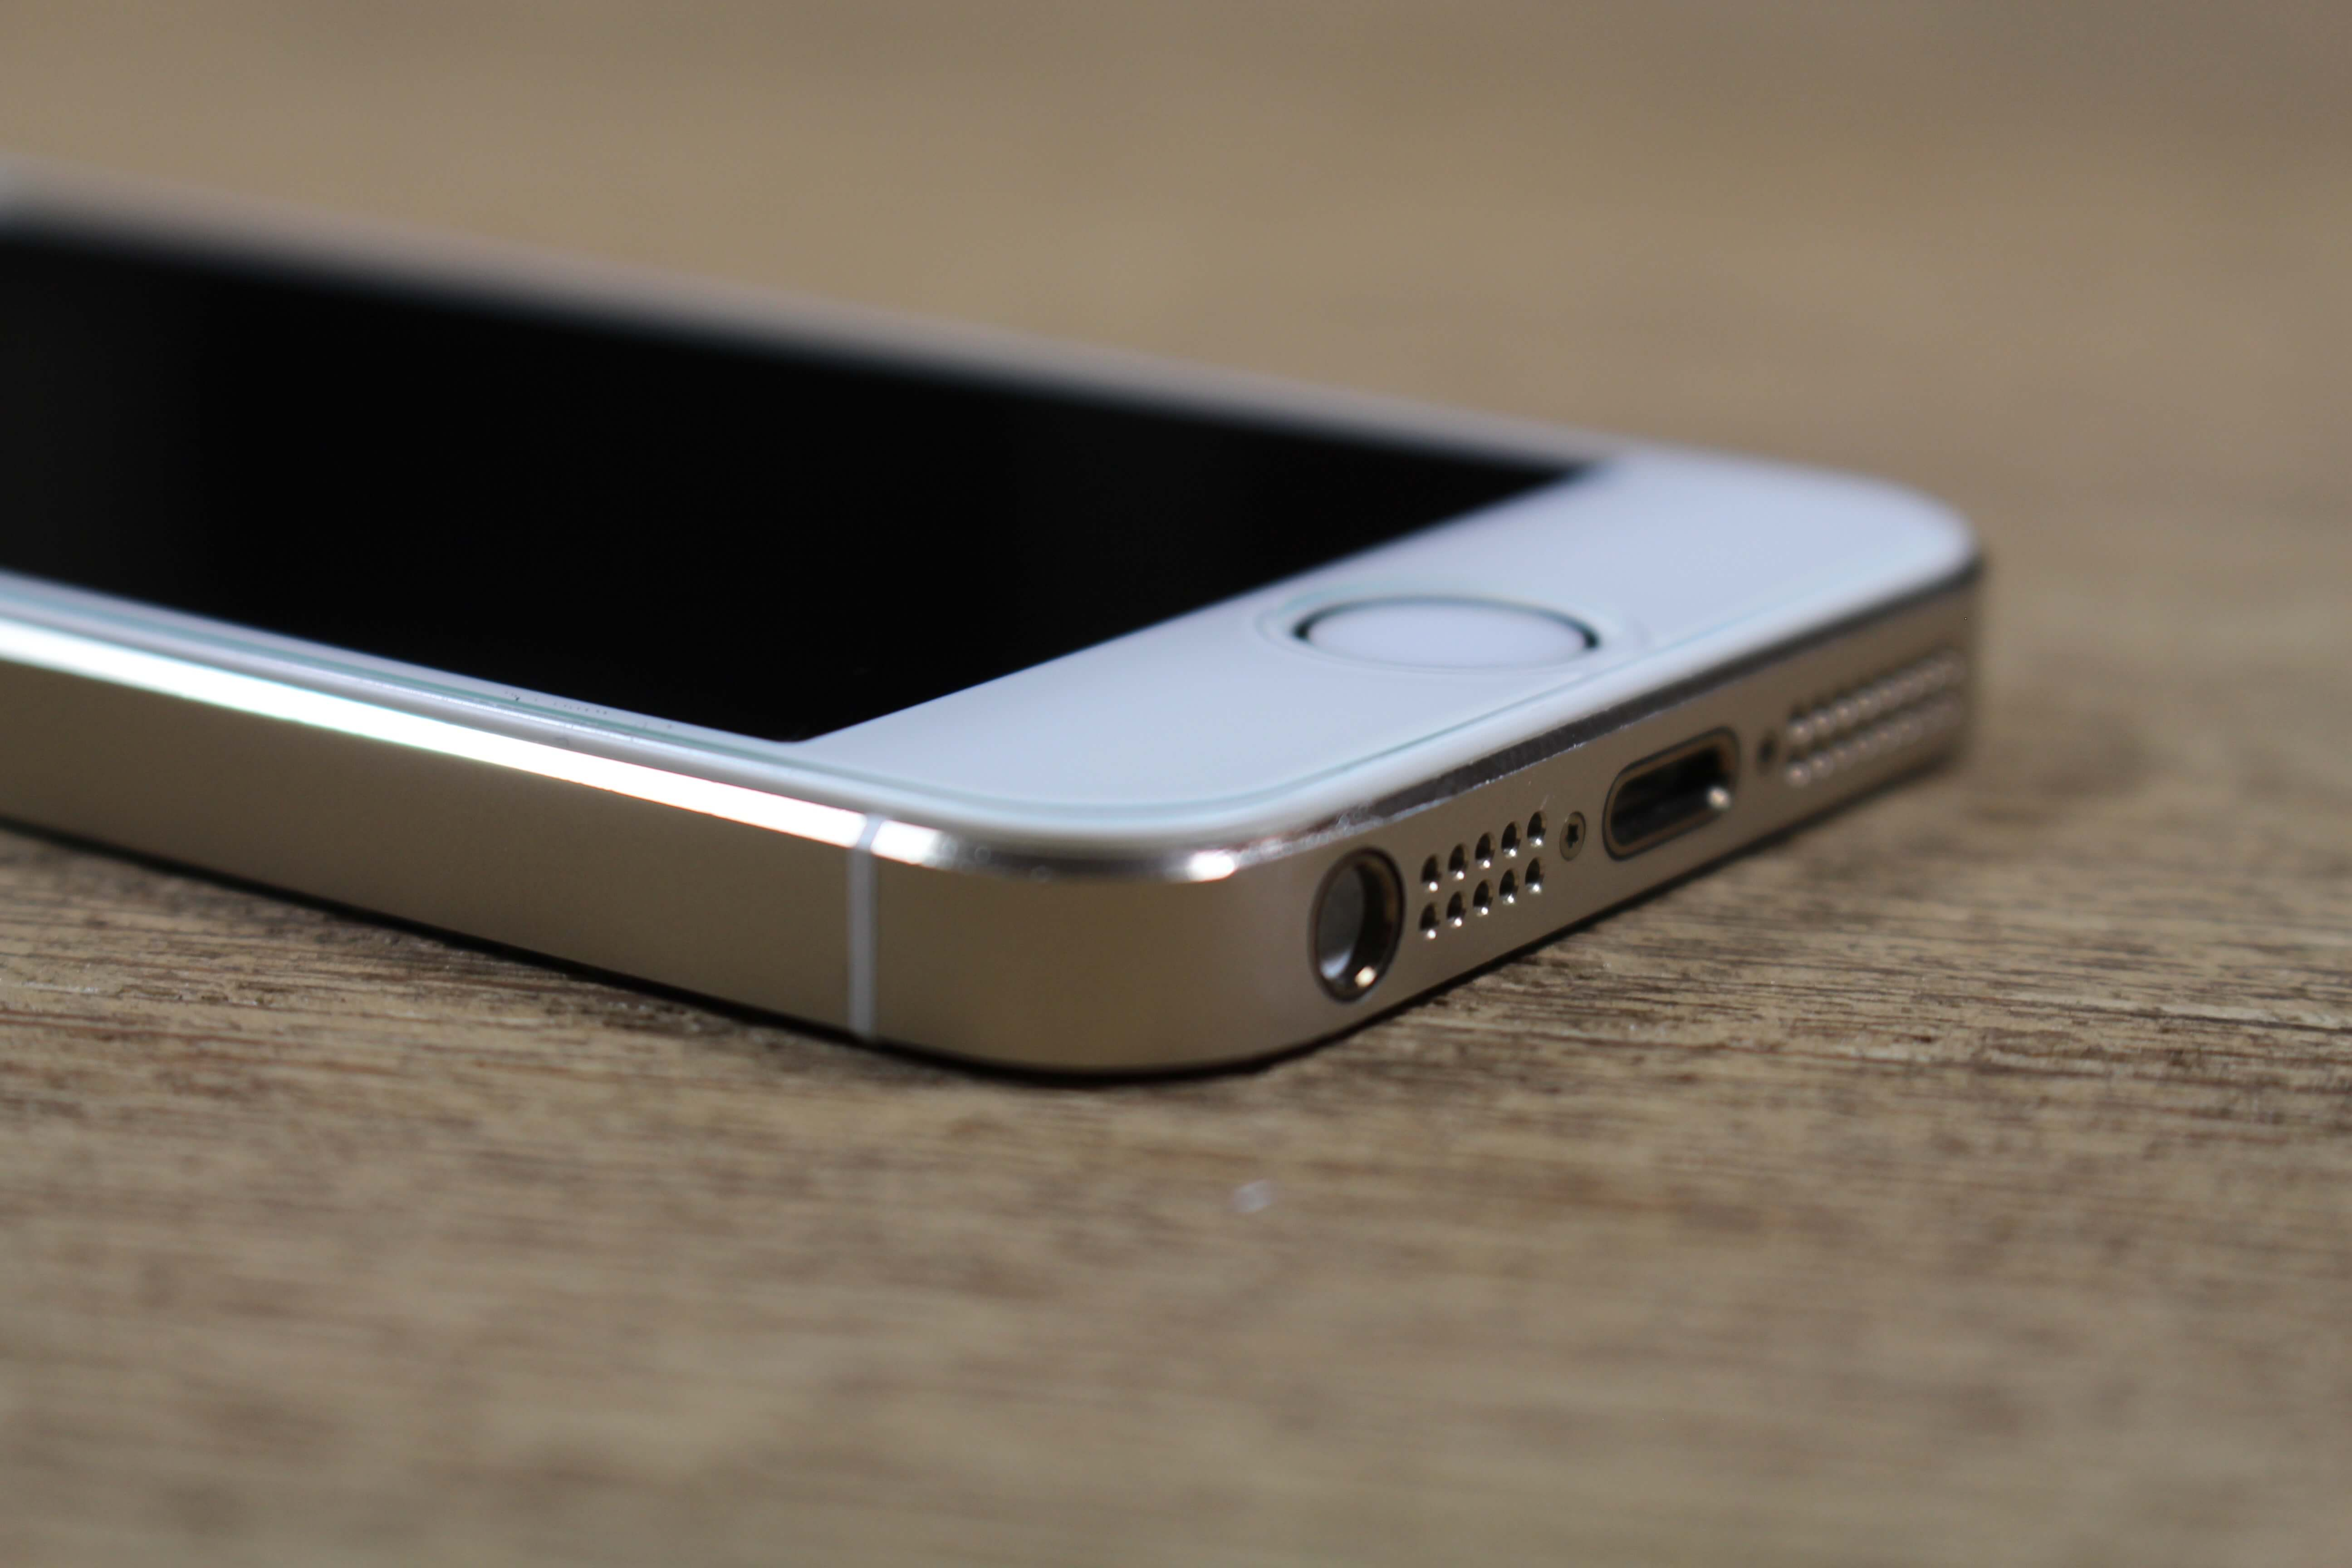 Displayschutz iPhone 5s Ansicht